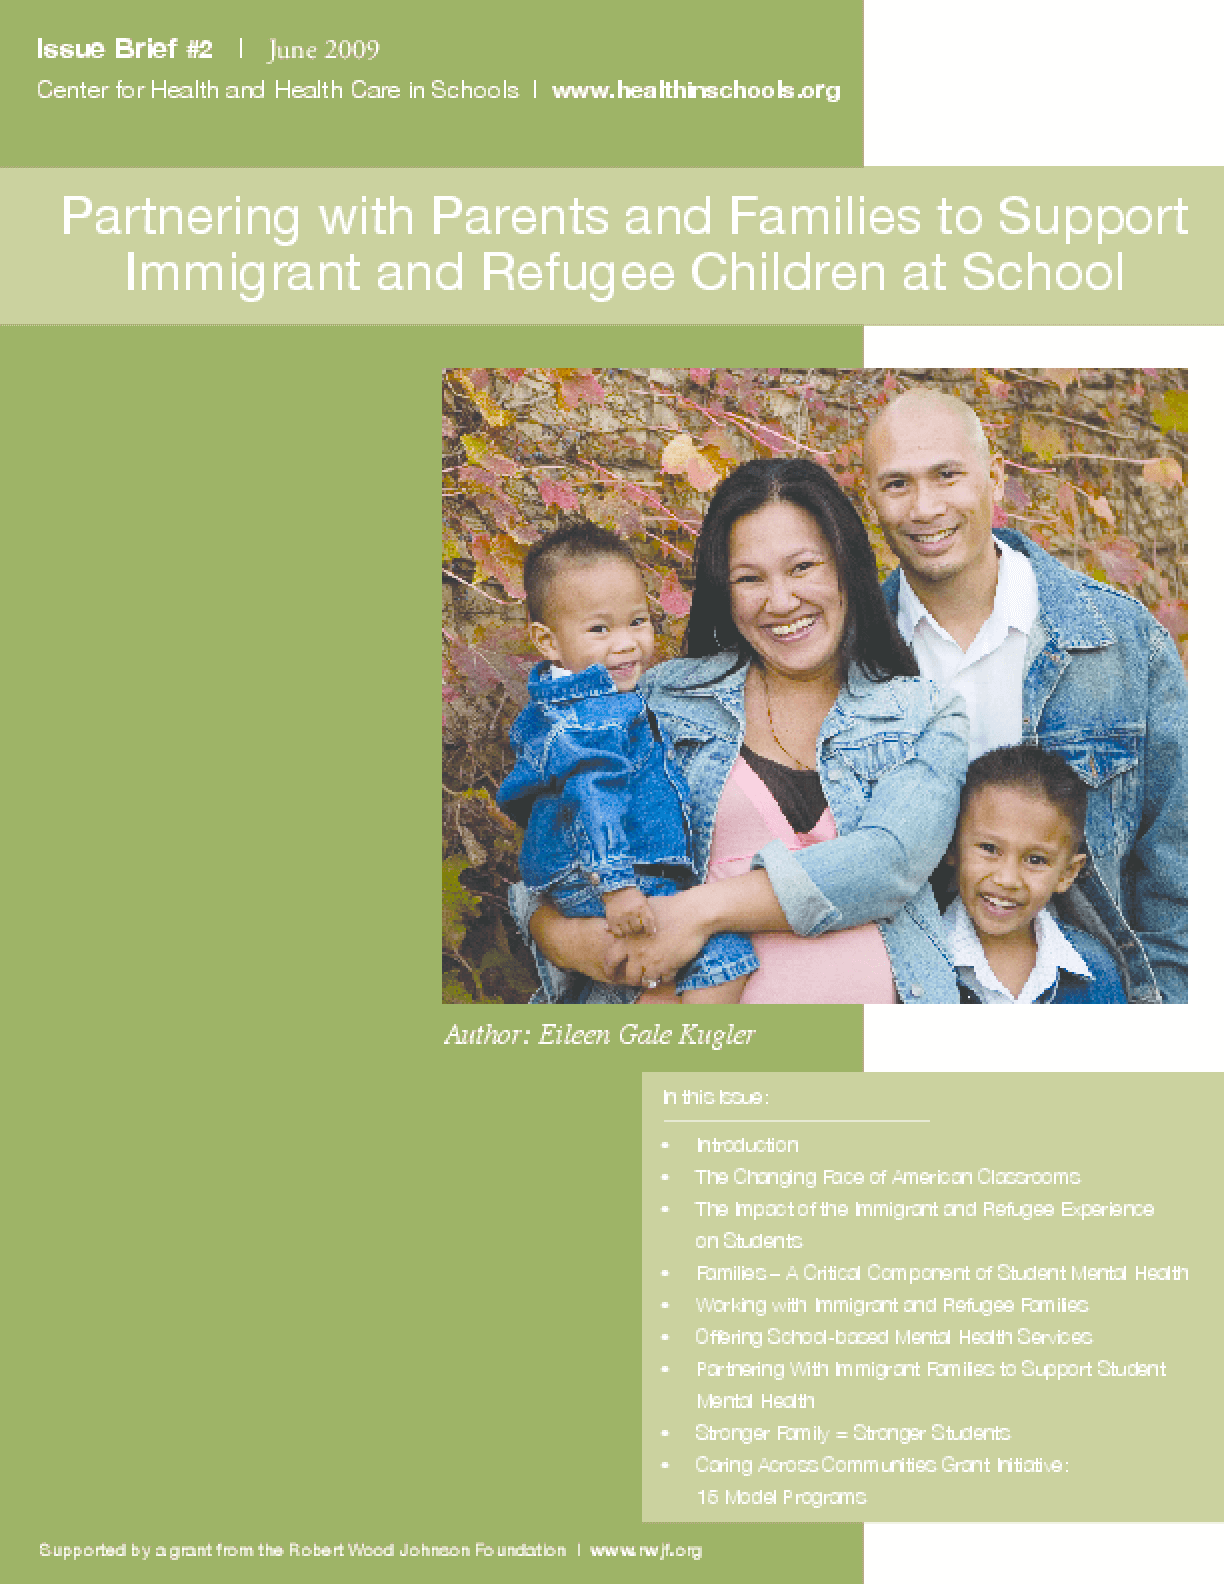 Partnering With Parents and Families to Support Immigrant and Refugee Children at School